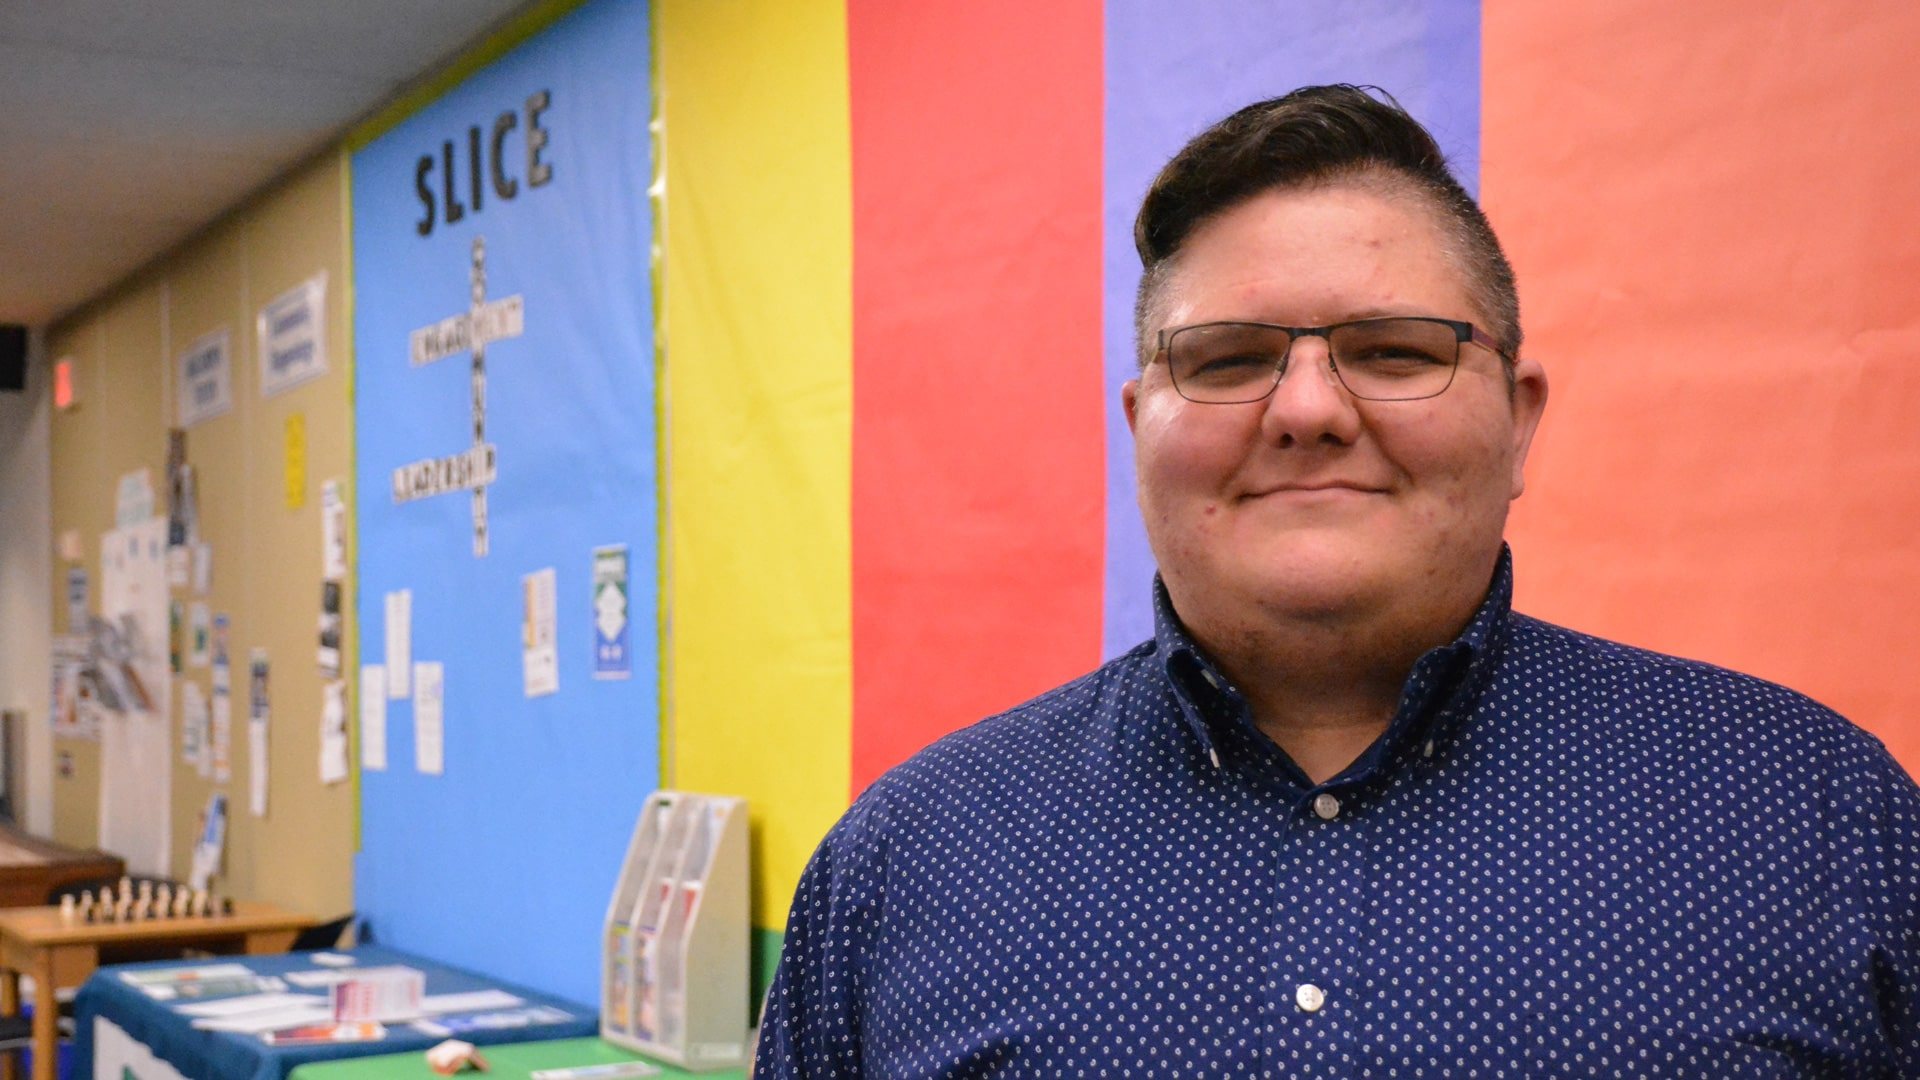 UHCL staff member appointed to Mayor's LGBTQ Advisory Board